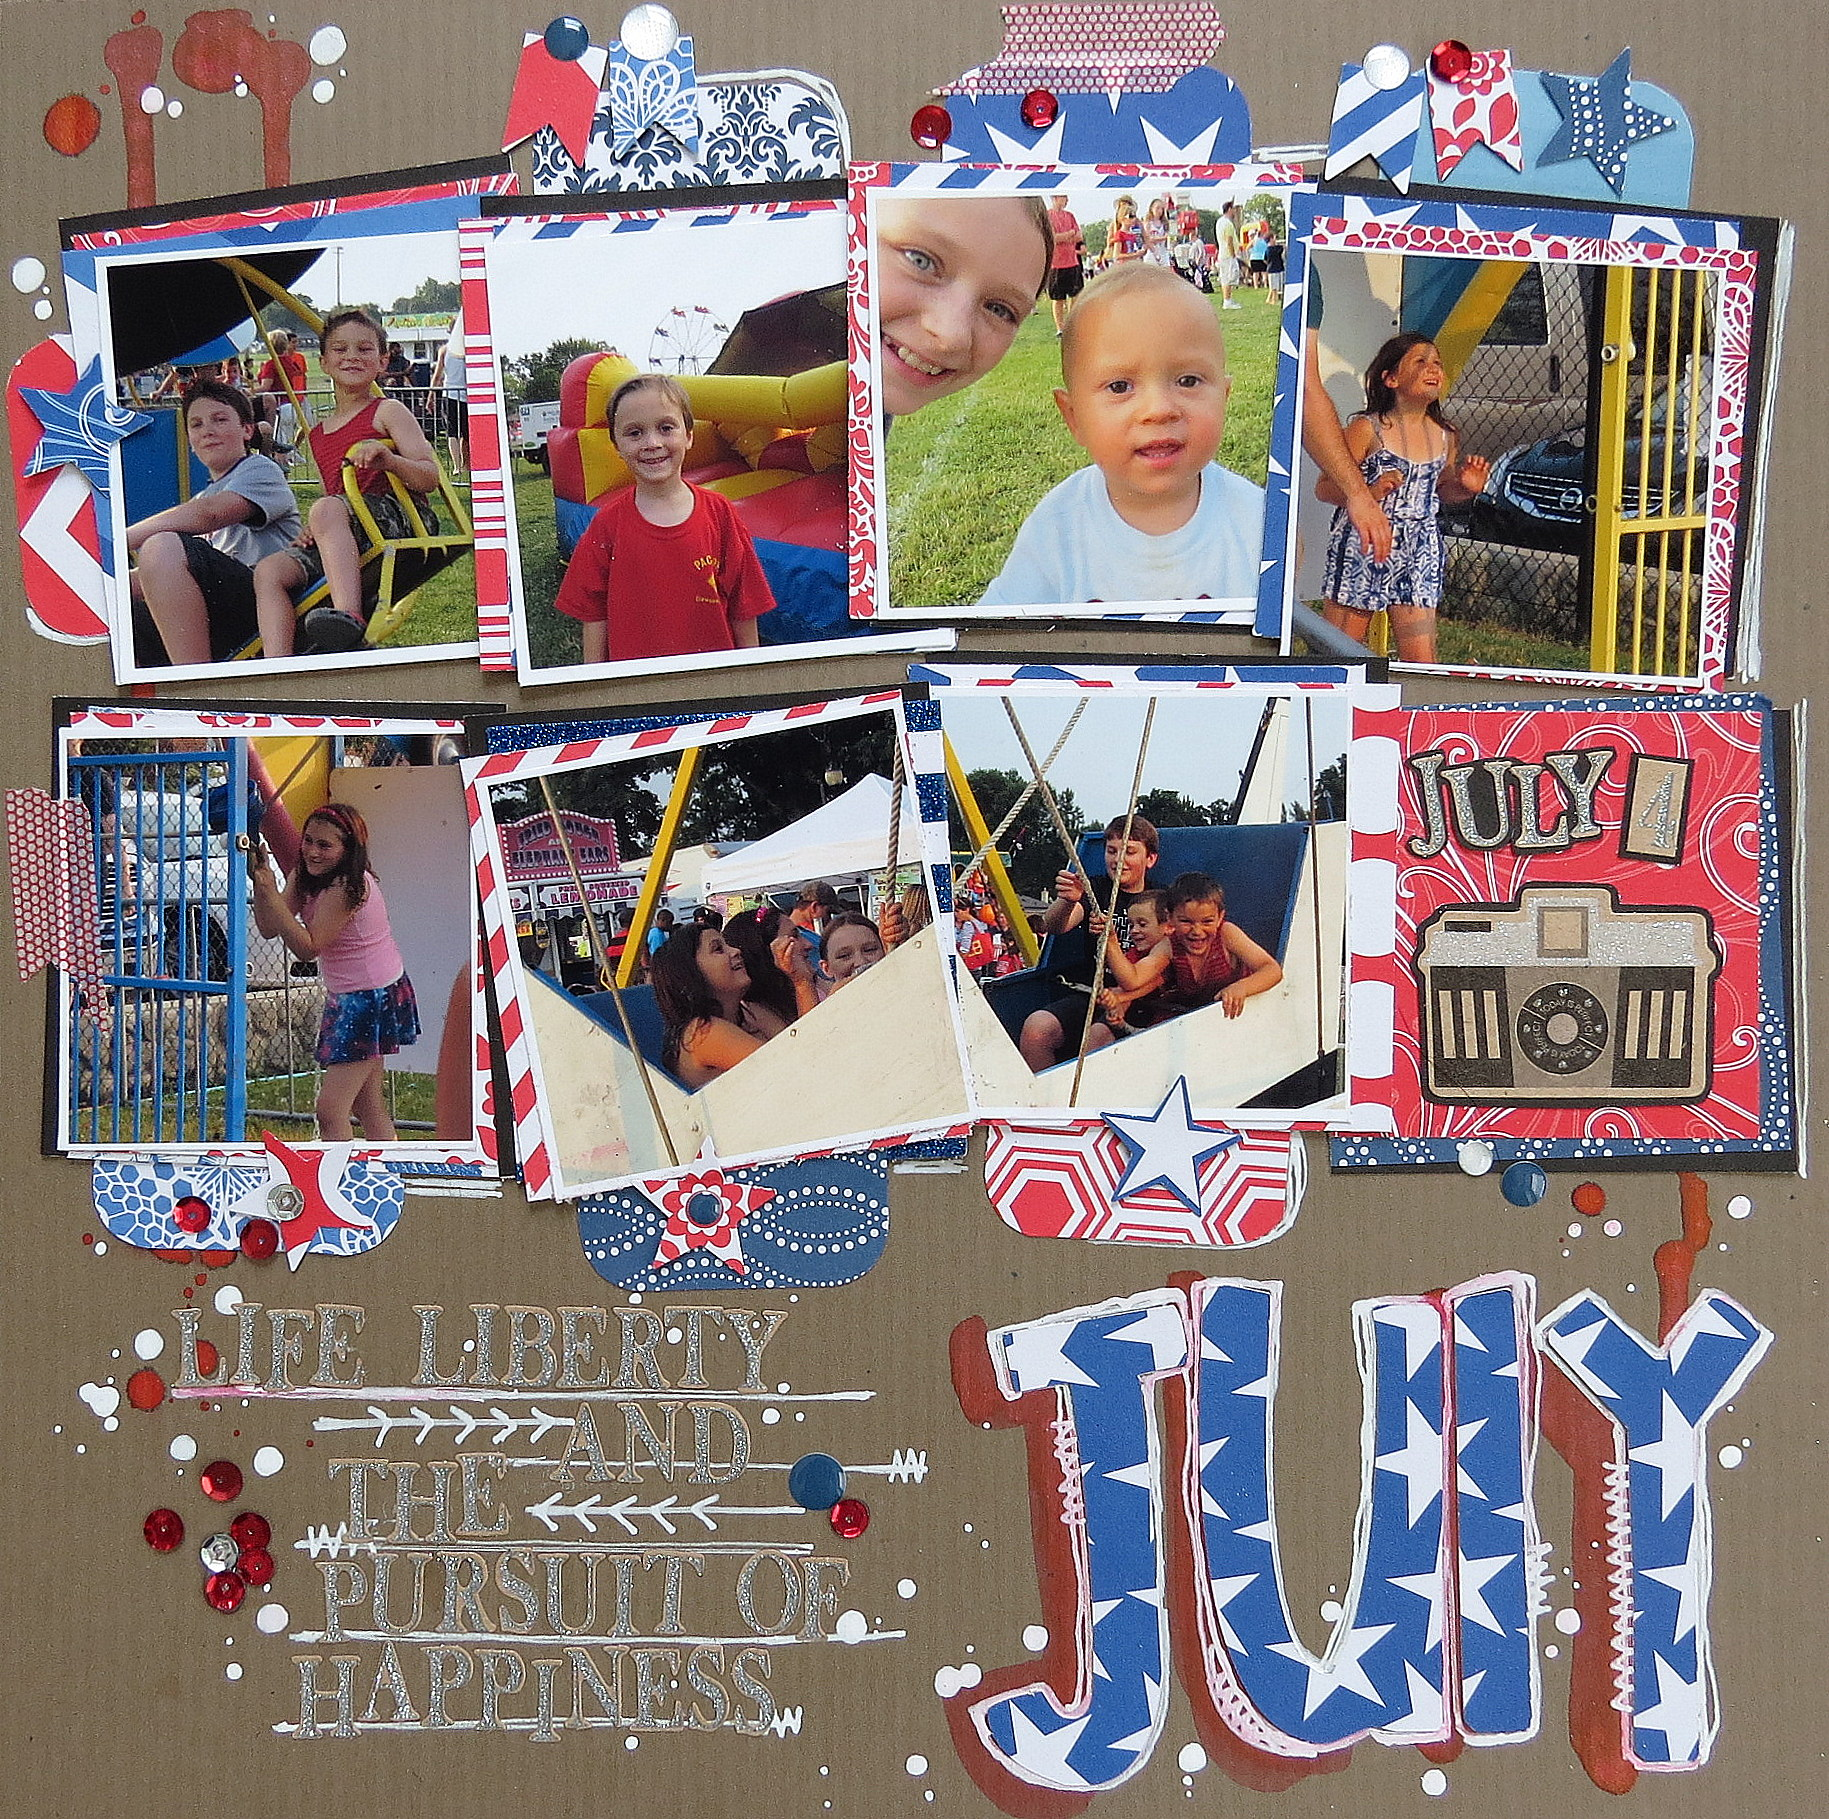 """Life Liberty And The Pursuit Of Happiness Quote: Layout: """"Life, Liberty And The Pursuit Of Happiness..."""""""